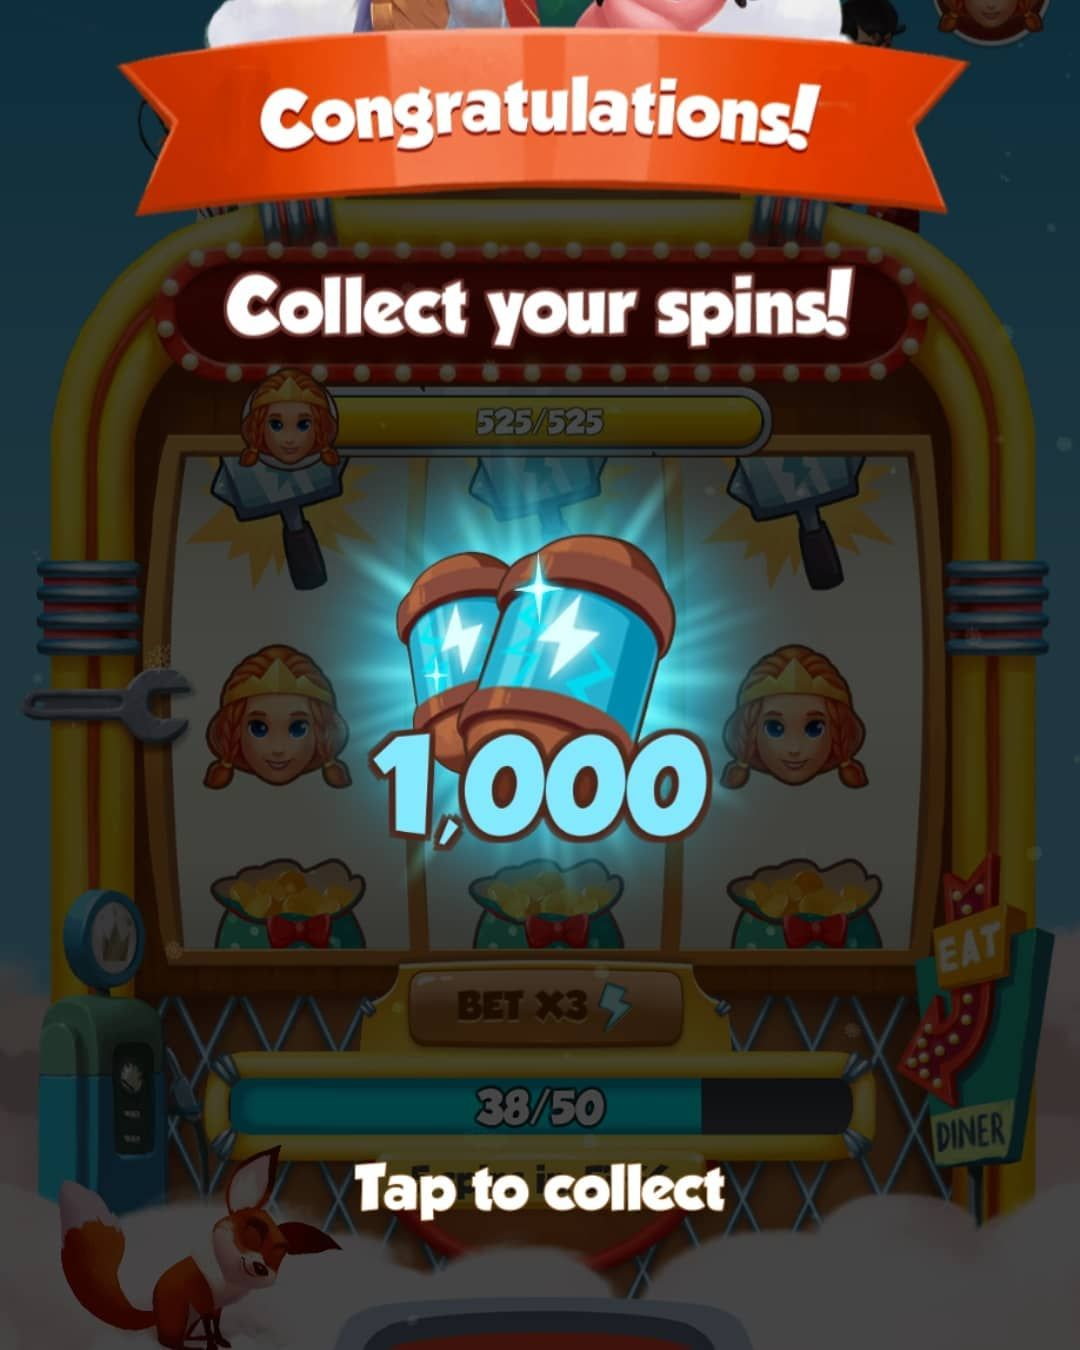 Visit the website to get free spins and coins